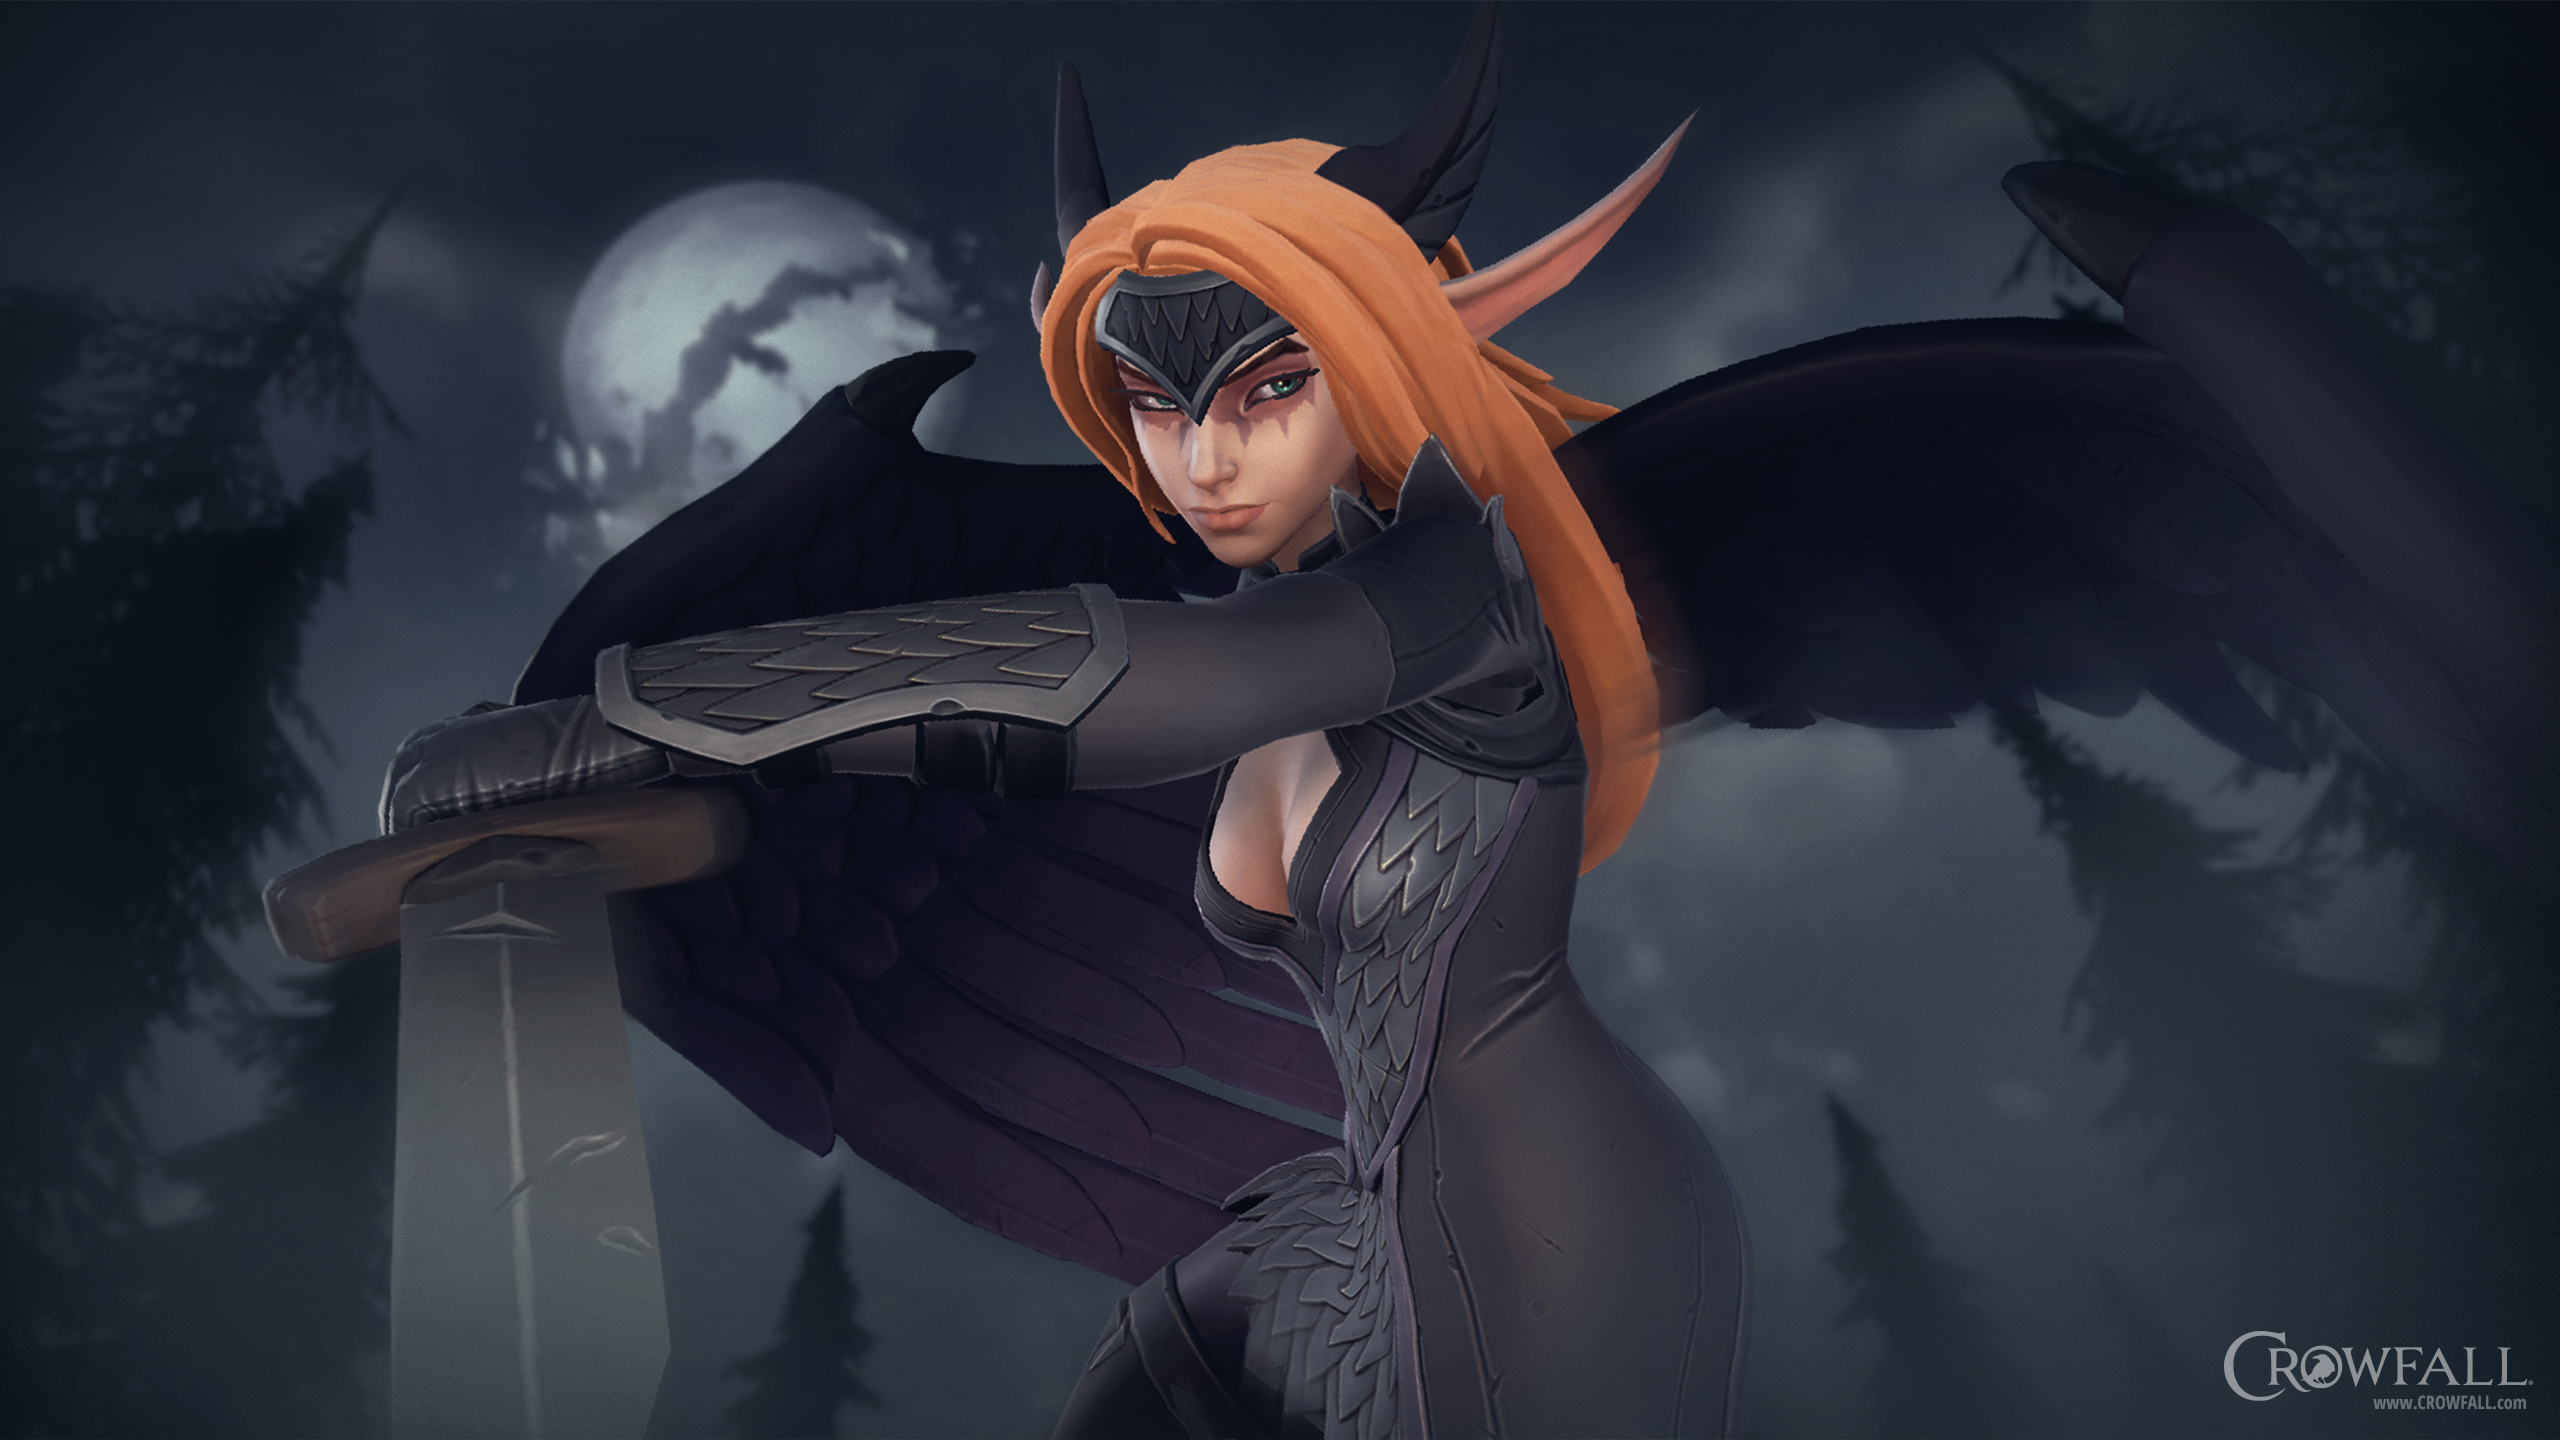 Nächtliche Pirscherin – Crowfall-Wallpaper 2560x1440